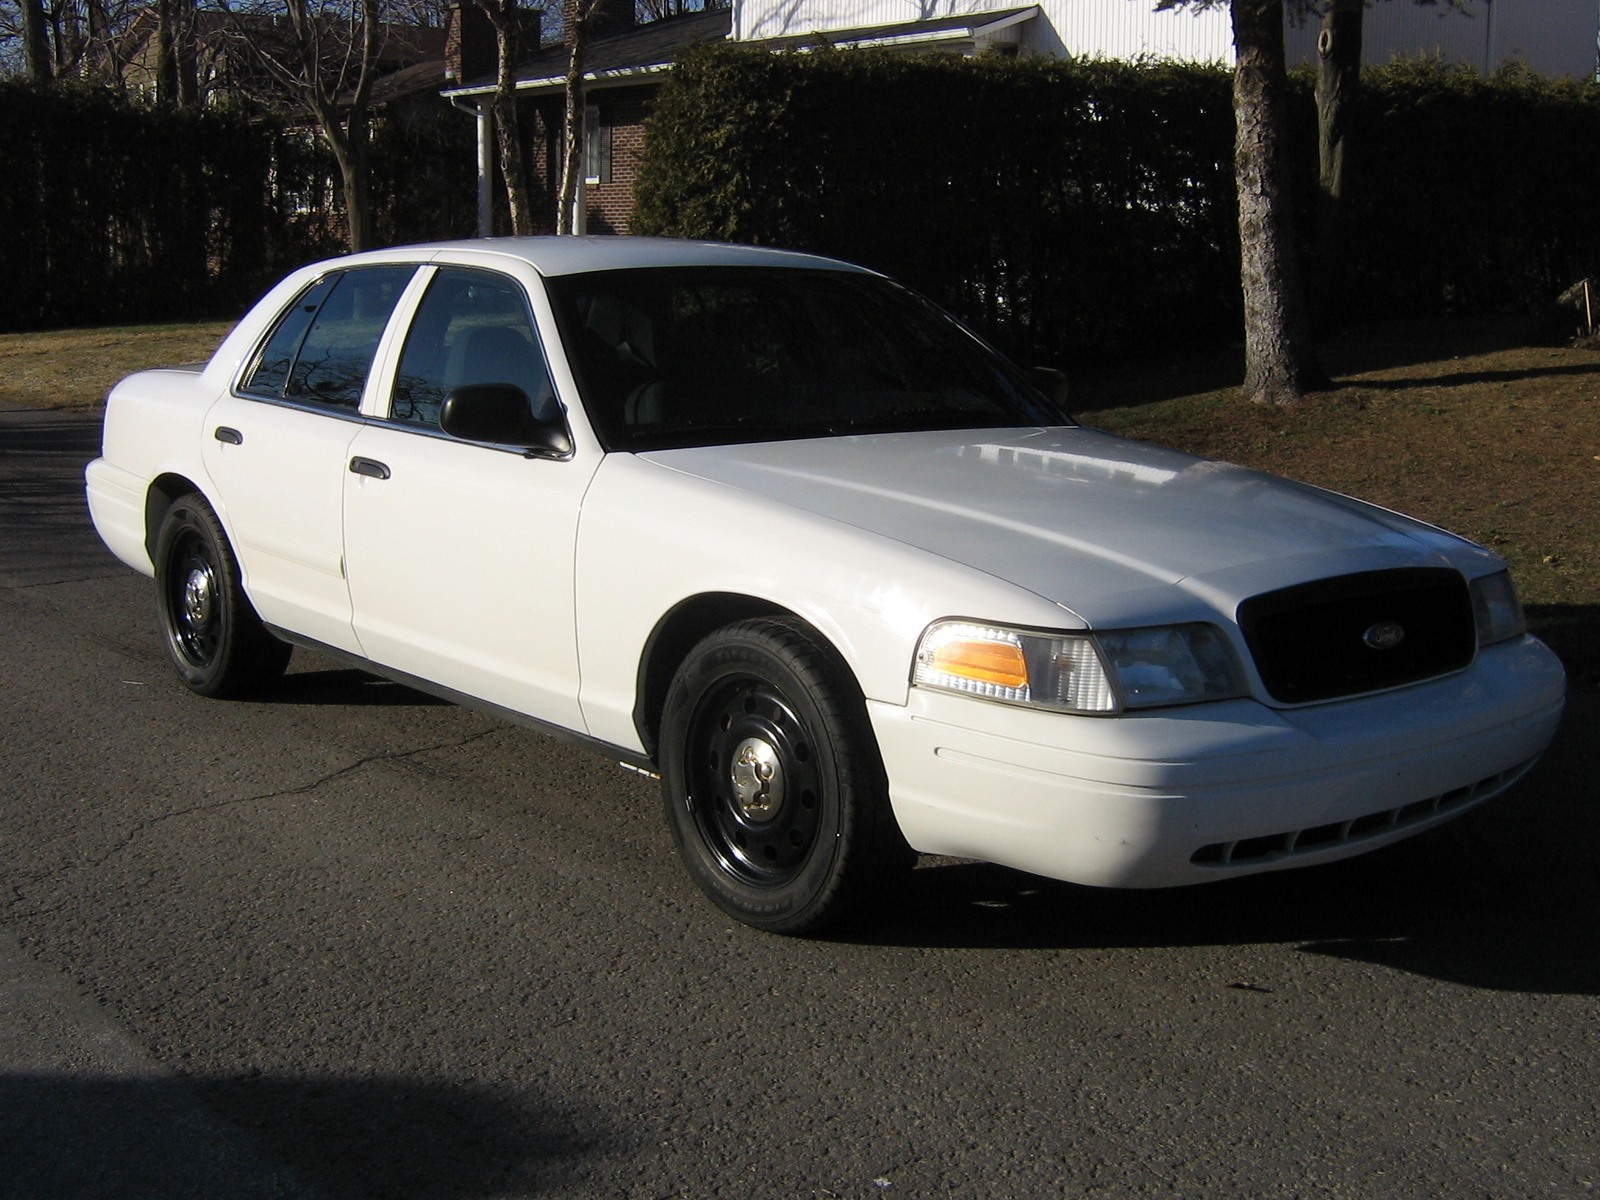 Of course, certain makes and models are more resilient than others and the Crown  Vic is known for its reliability.